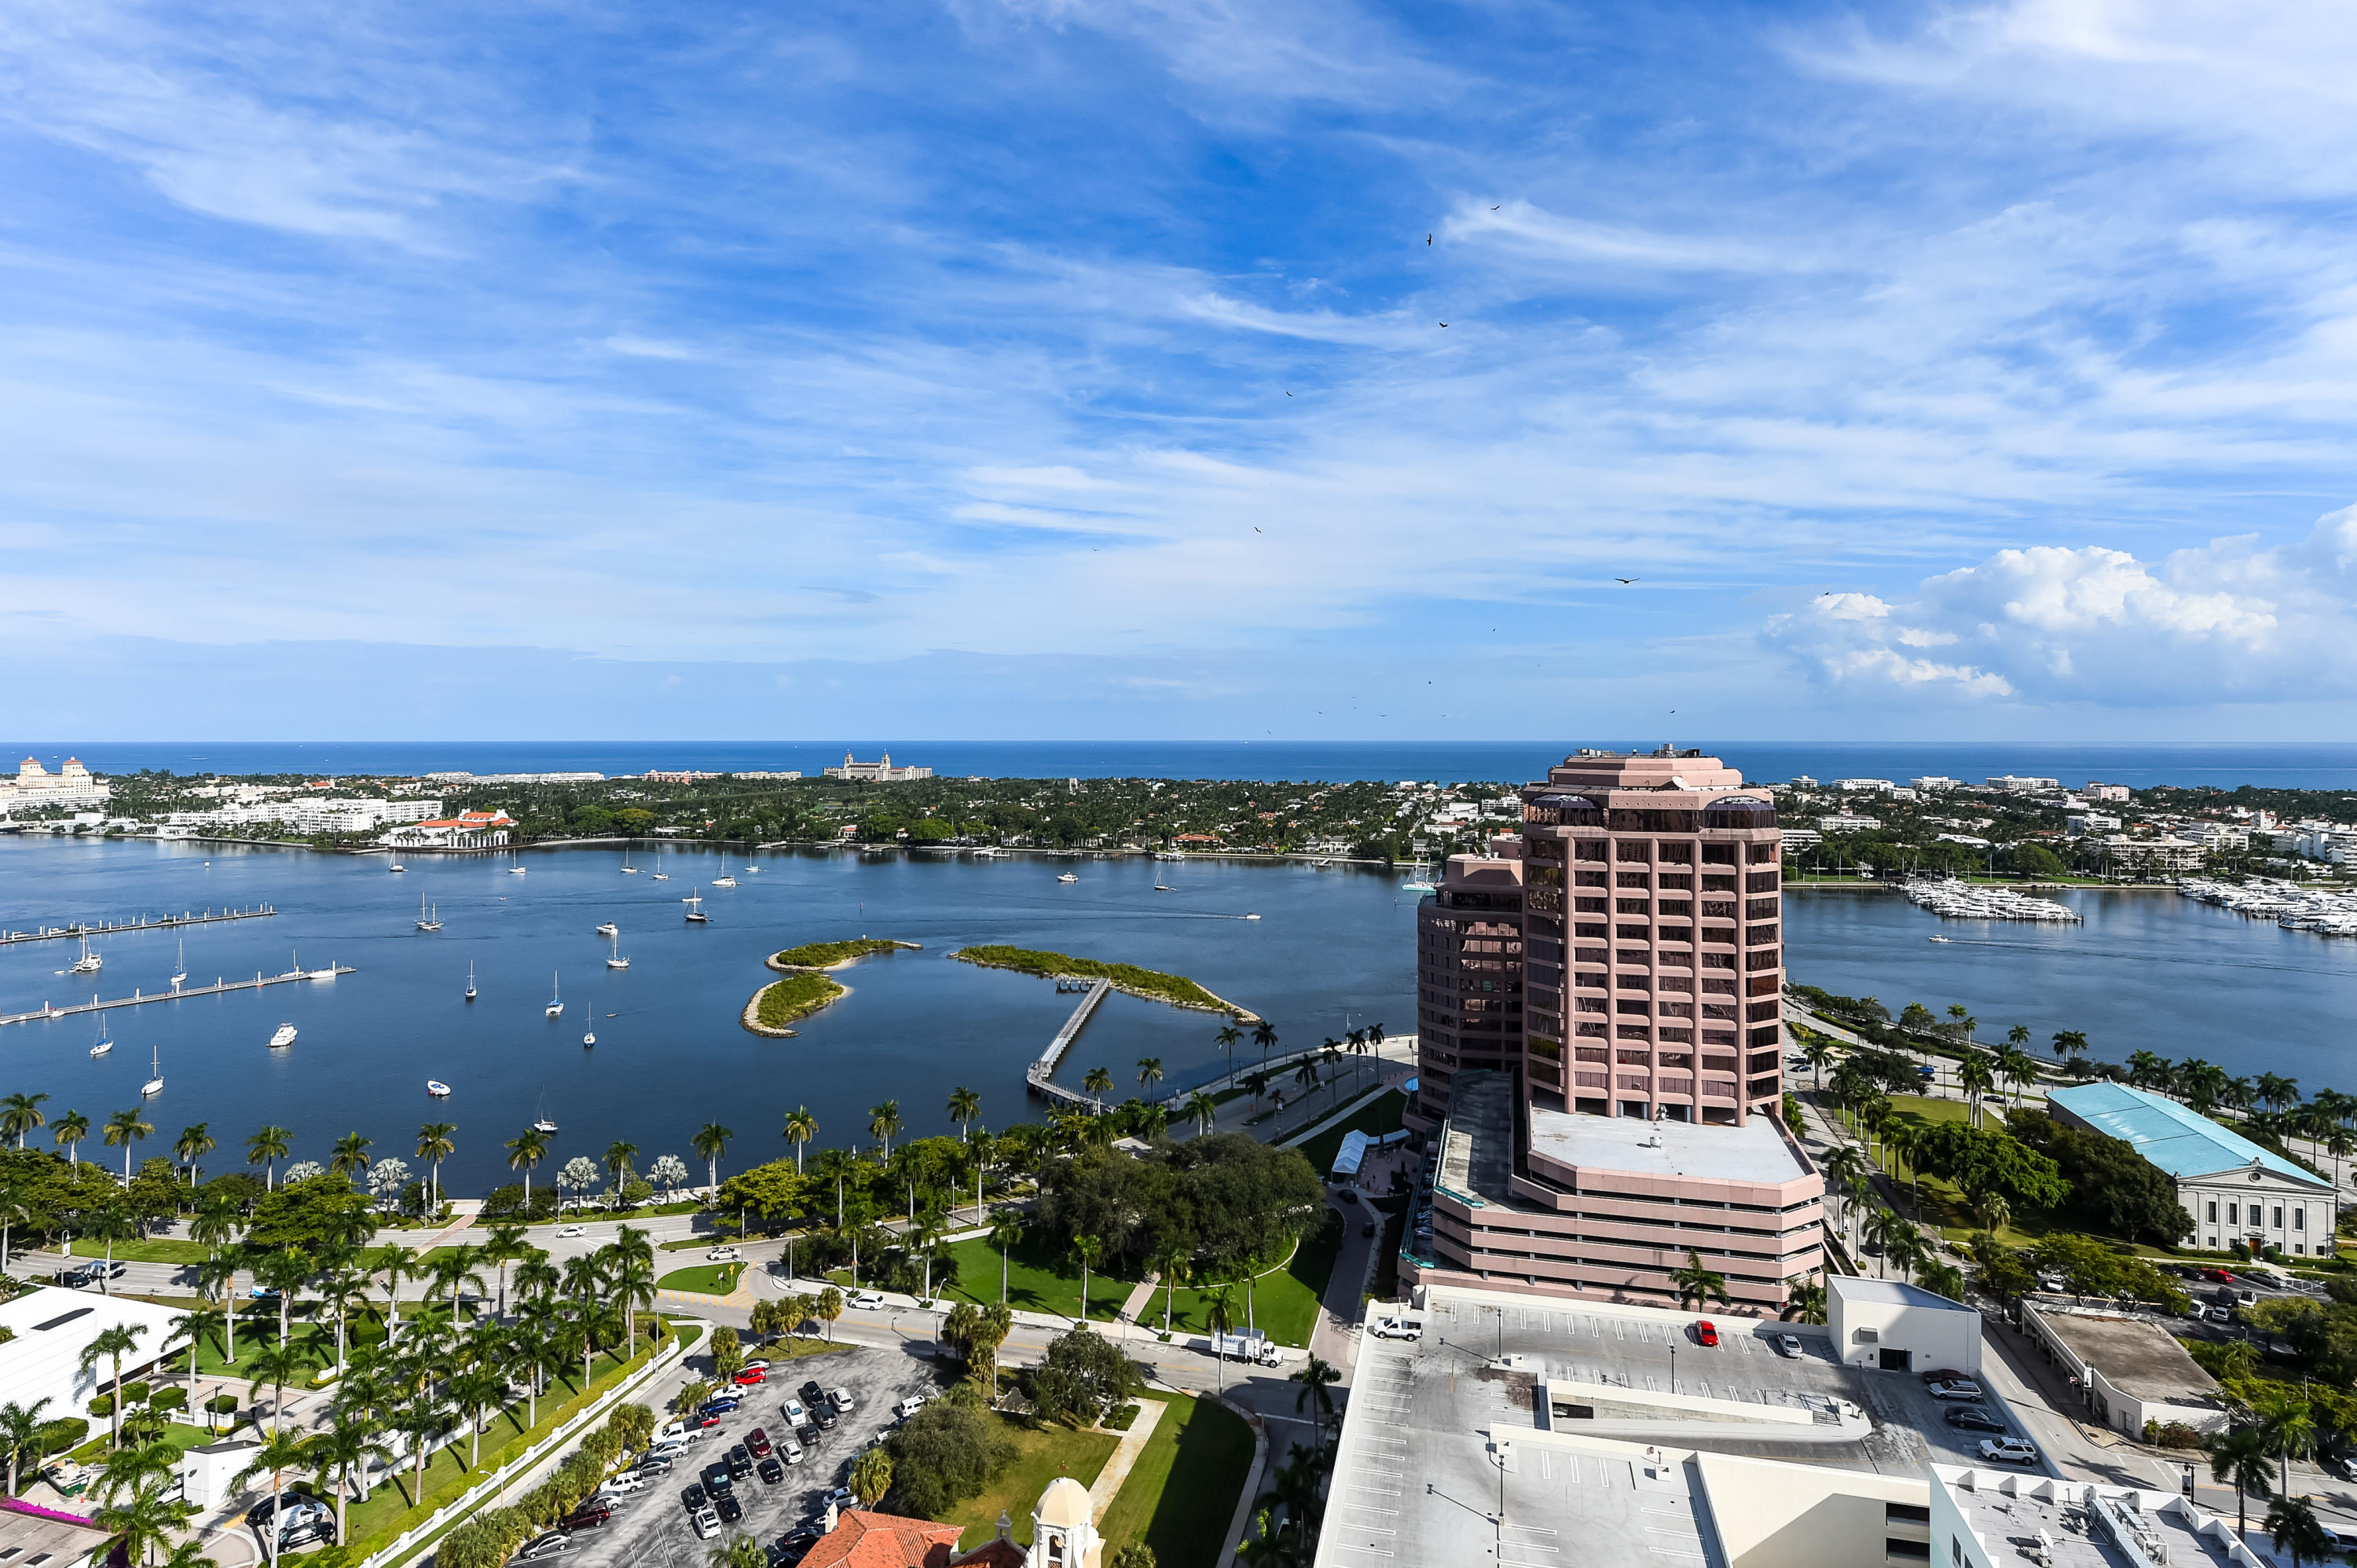 701 S Olive Avenue 1807 West Palm Beach, FL 33401